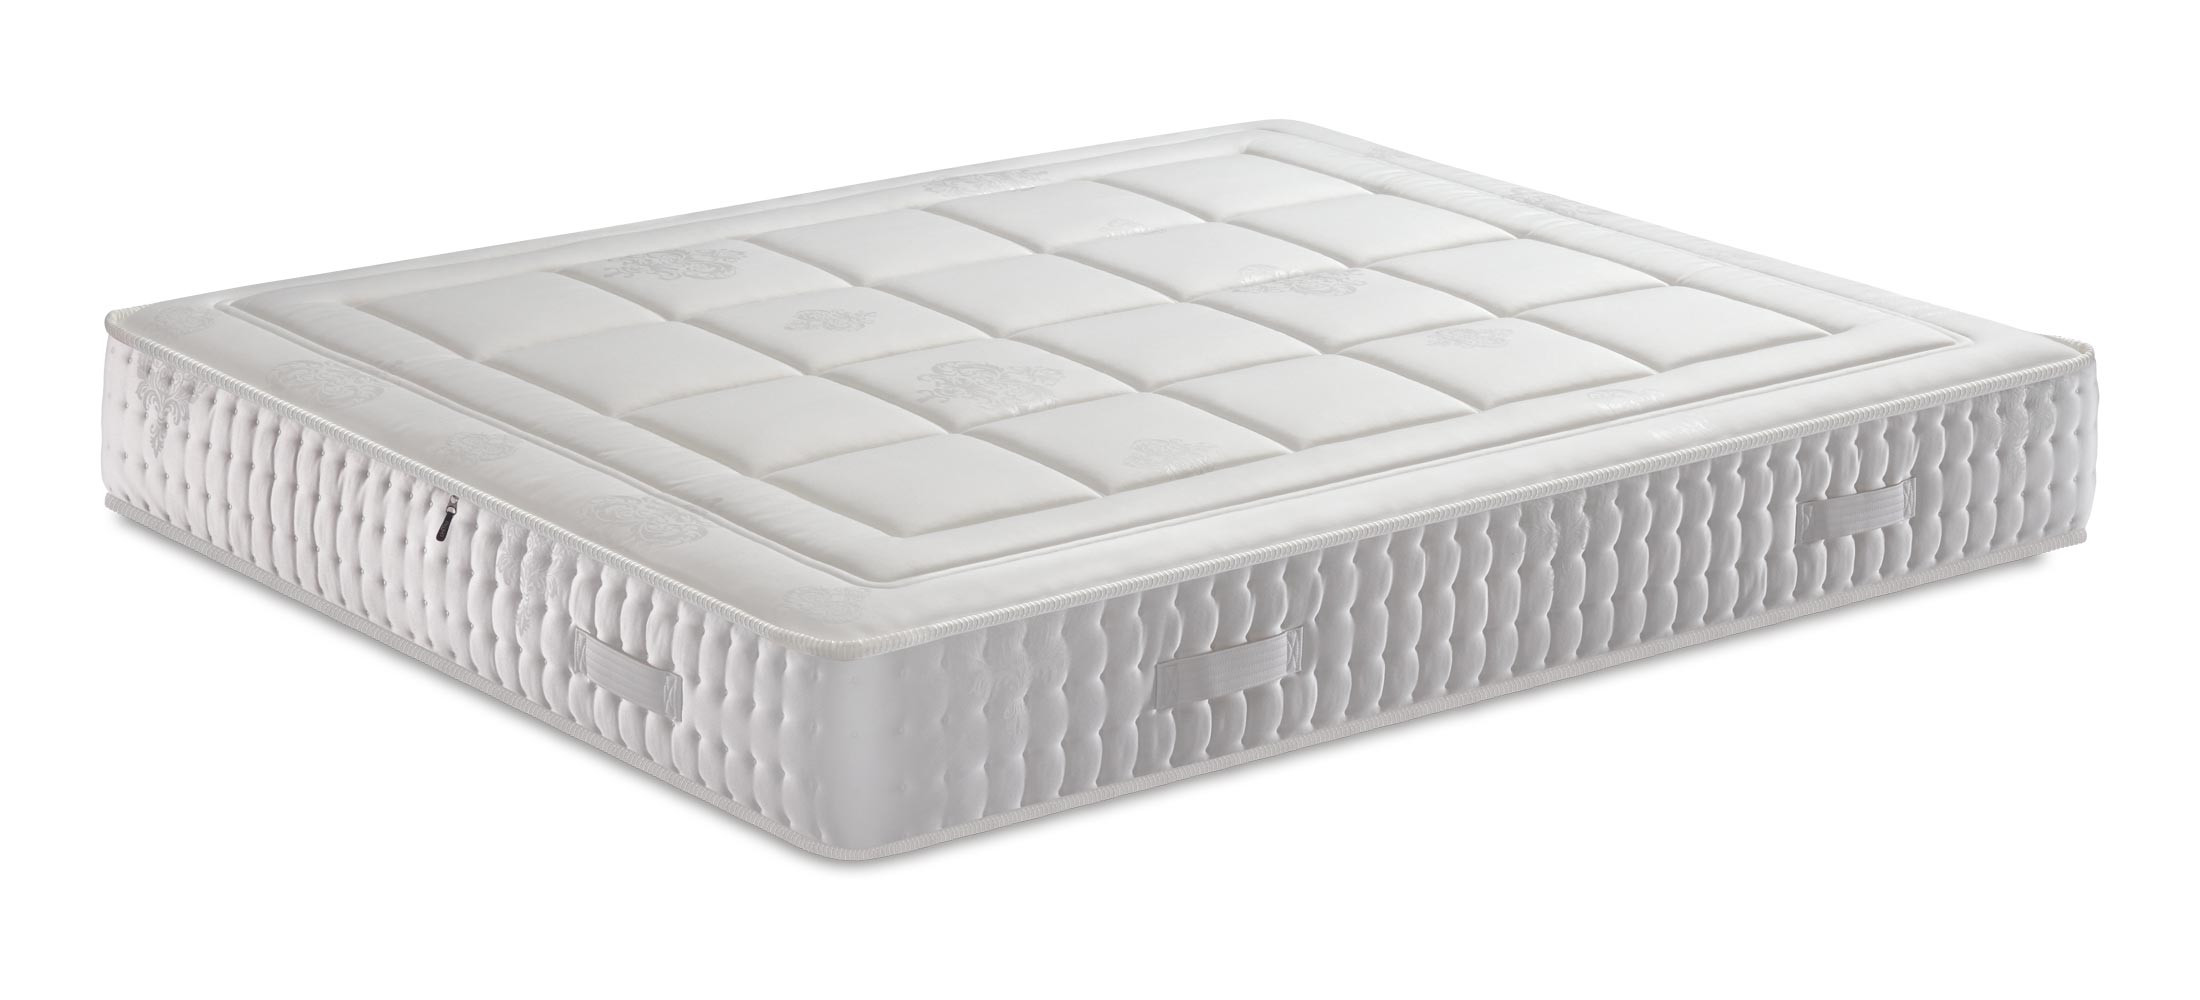 Materassi Ortopedici On Line.Pocketed Spring Mattress Orthopedic Form Purchase Now